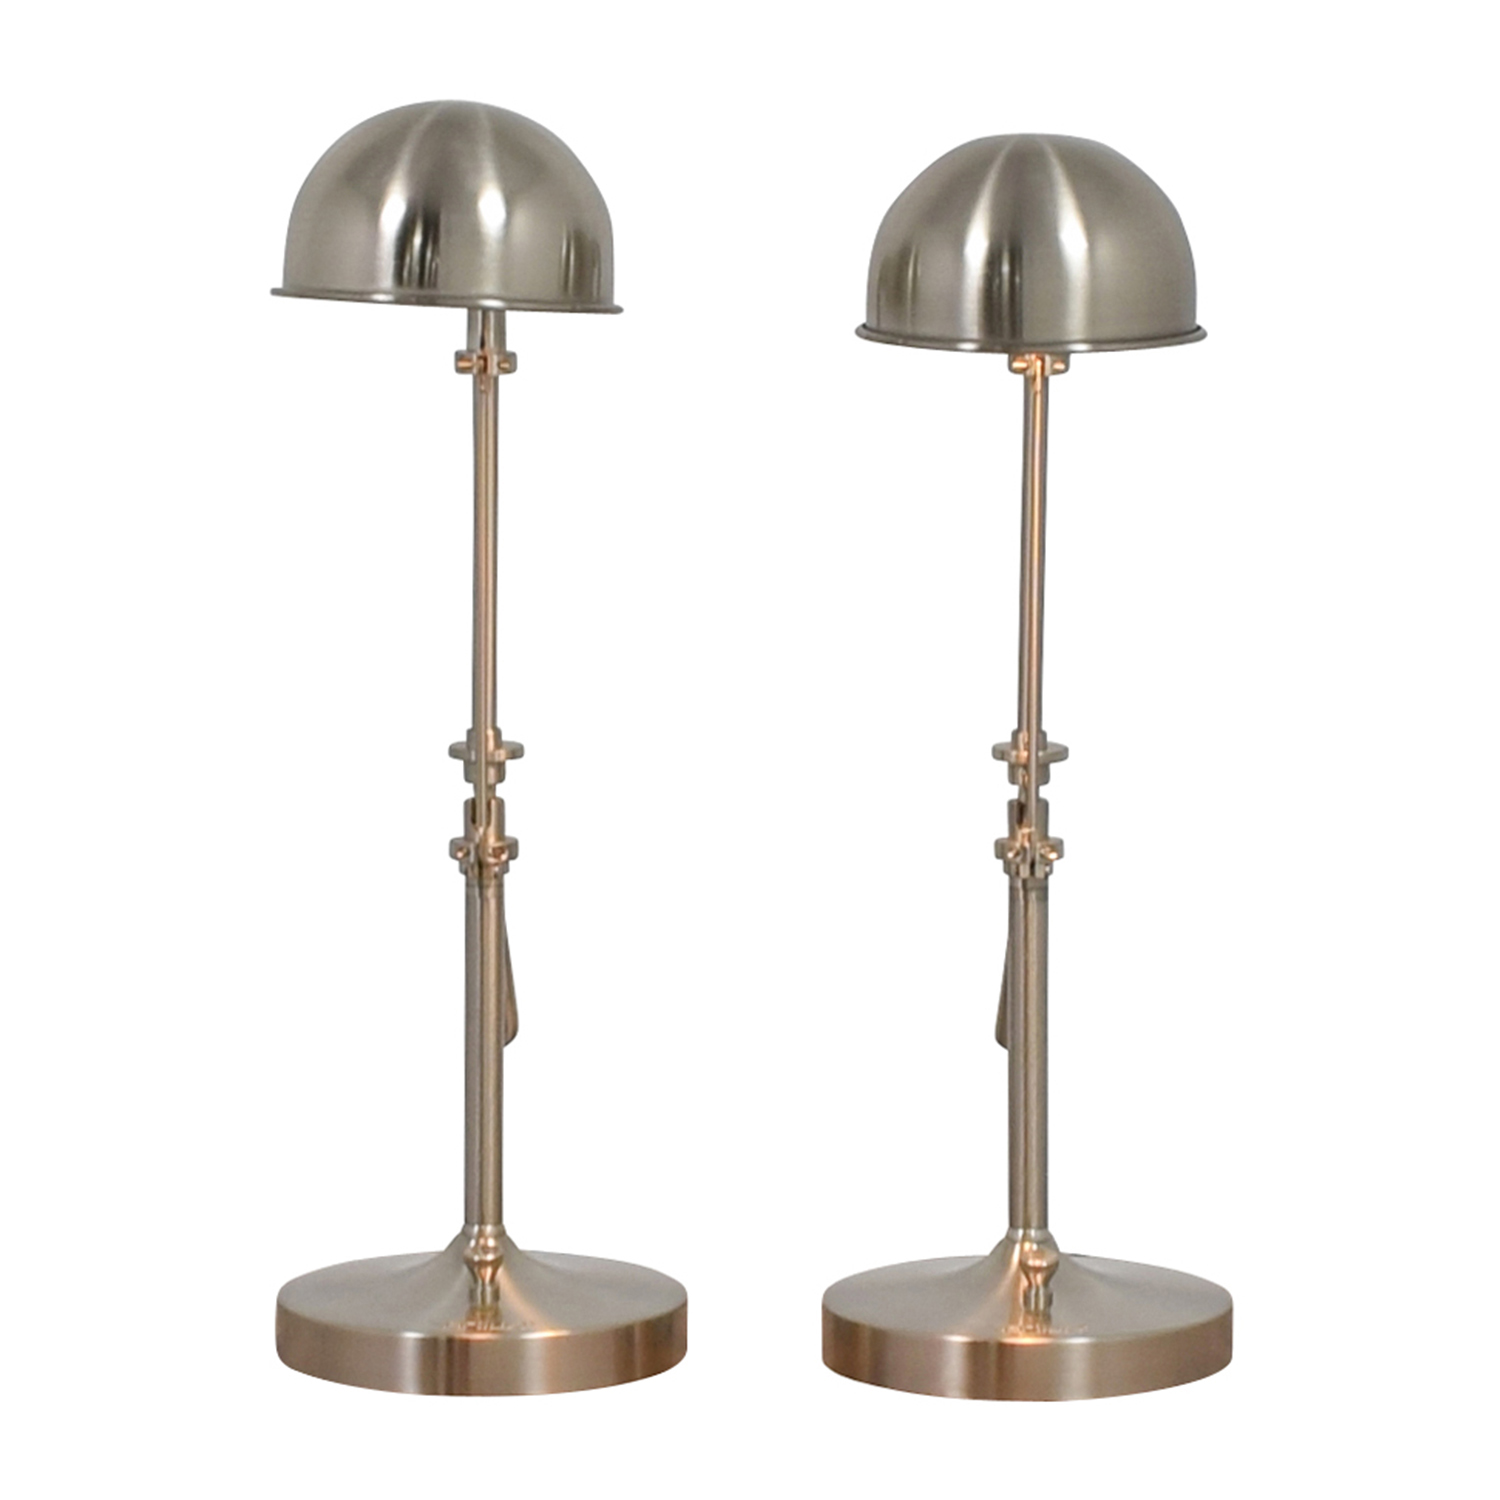 Verilux Verilux Chrome Doomed Lamps coupon